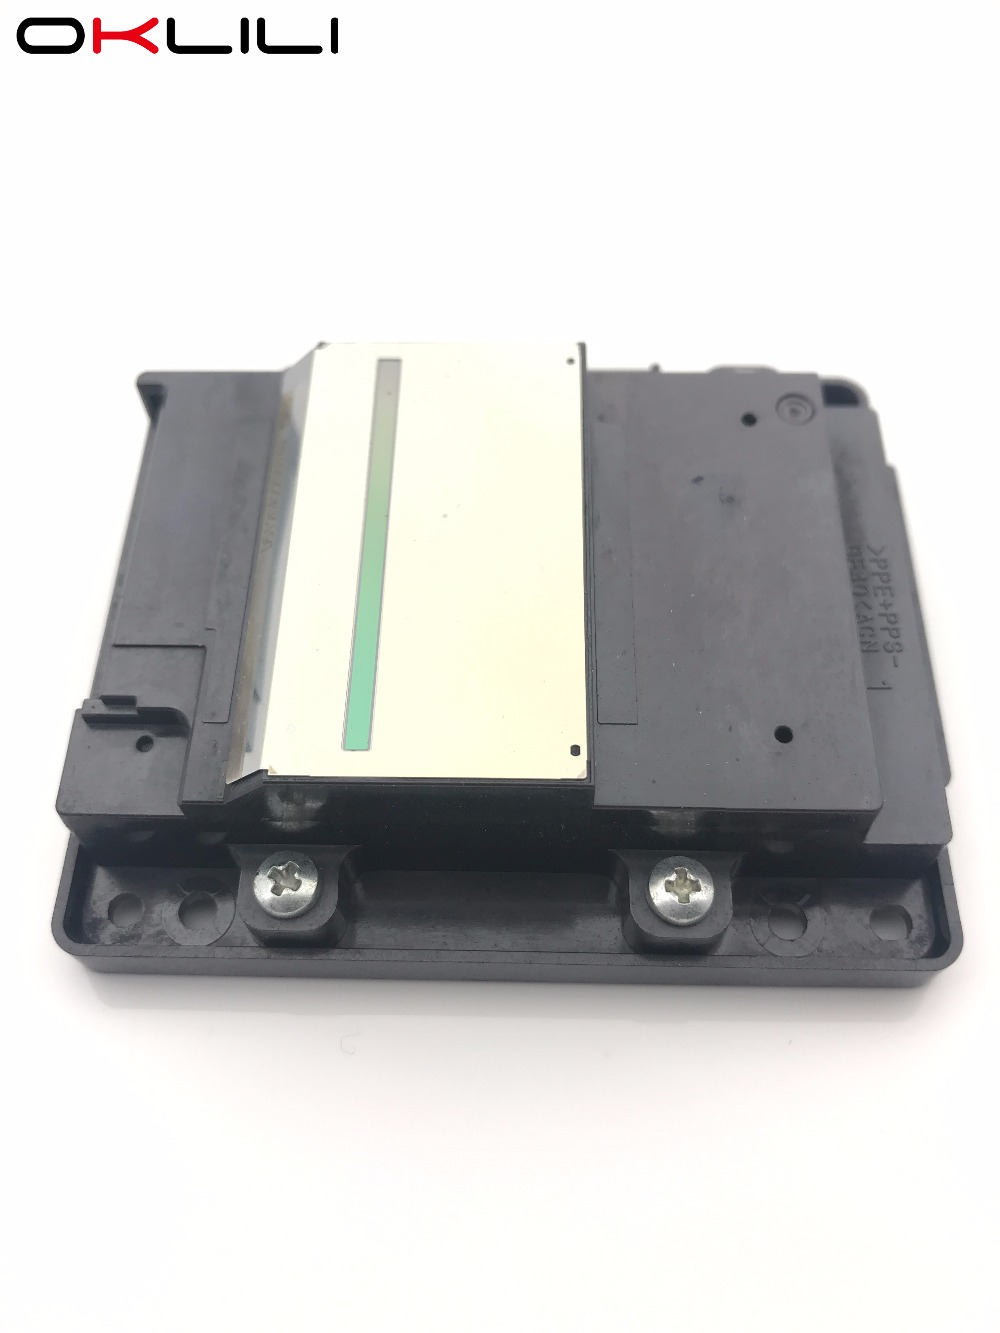 Printhead Printer Print Head for Epson WF-2650 WF-2651 WF-2660 WF-2661 WF-2750 WF2650 WF2651 WF2660 WF2661 WF2750 WF 2650 2660 main board cd77 for epson workforce wf 2660 wf 2660 all in one printer